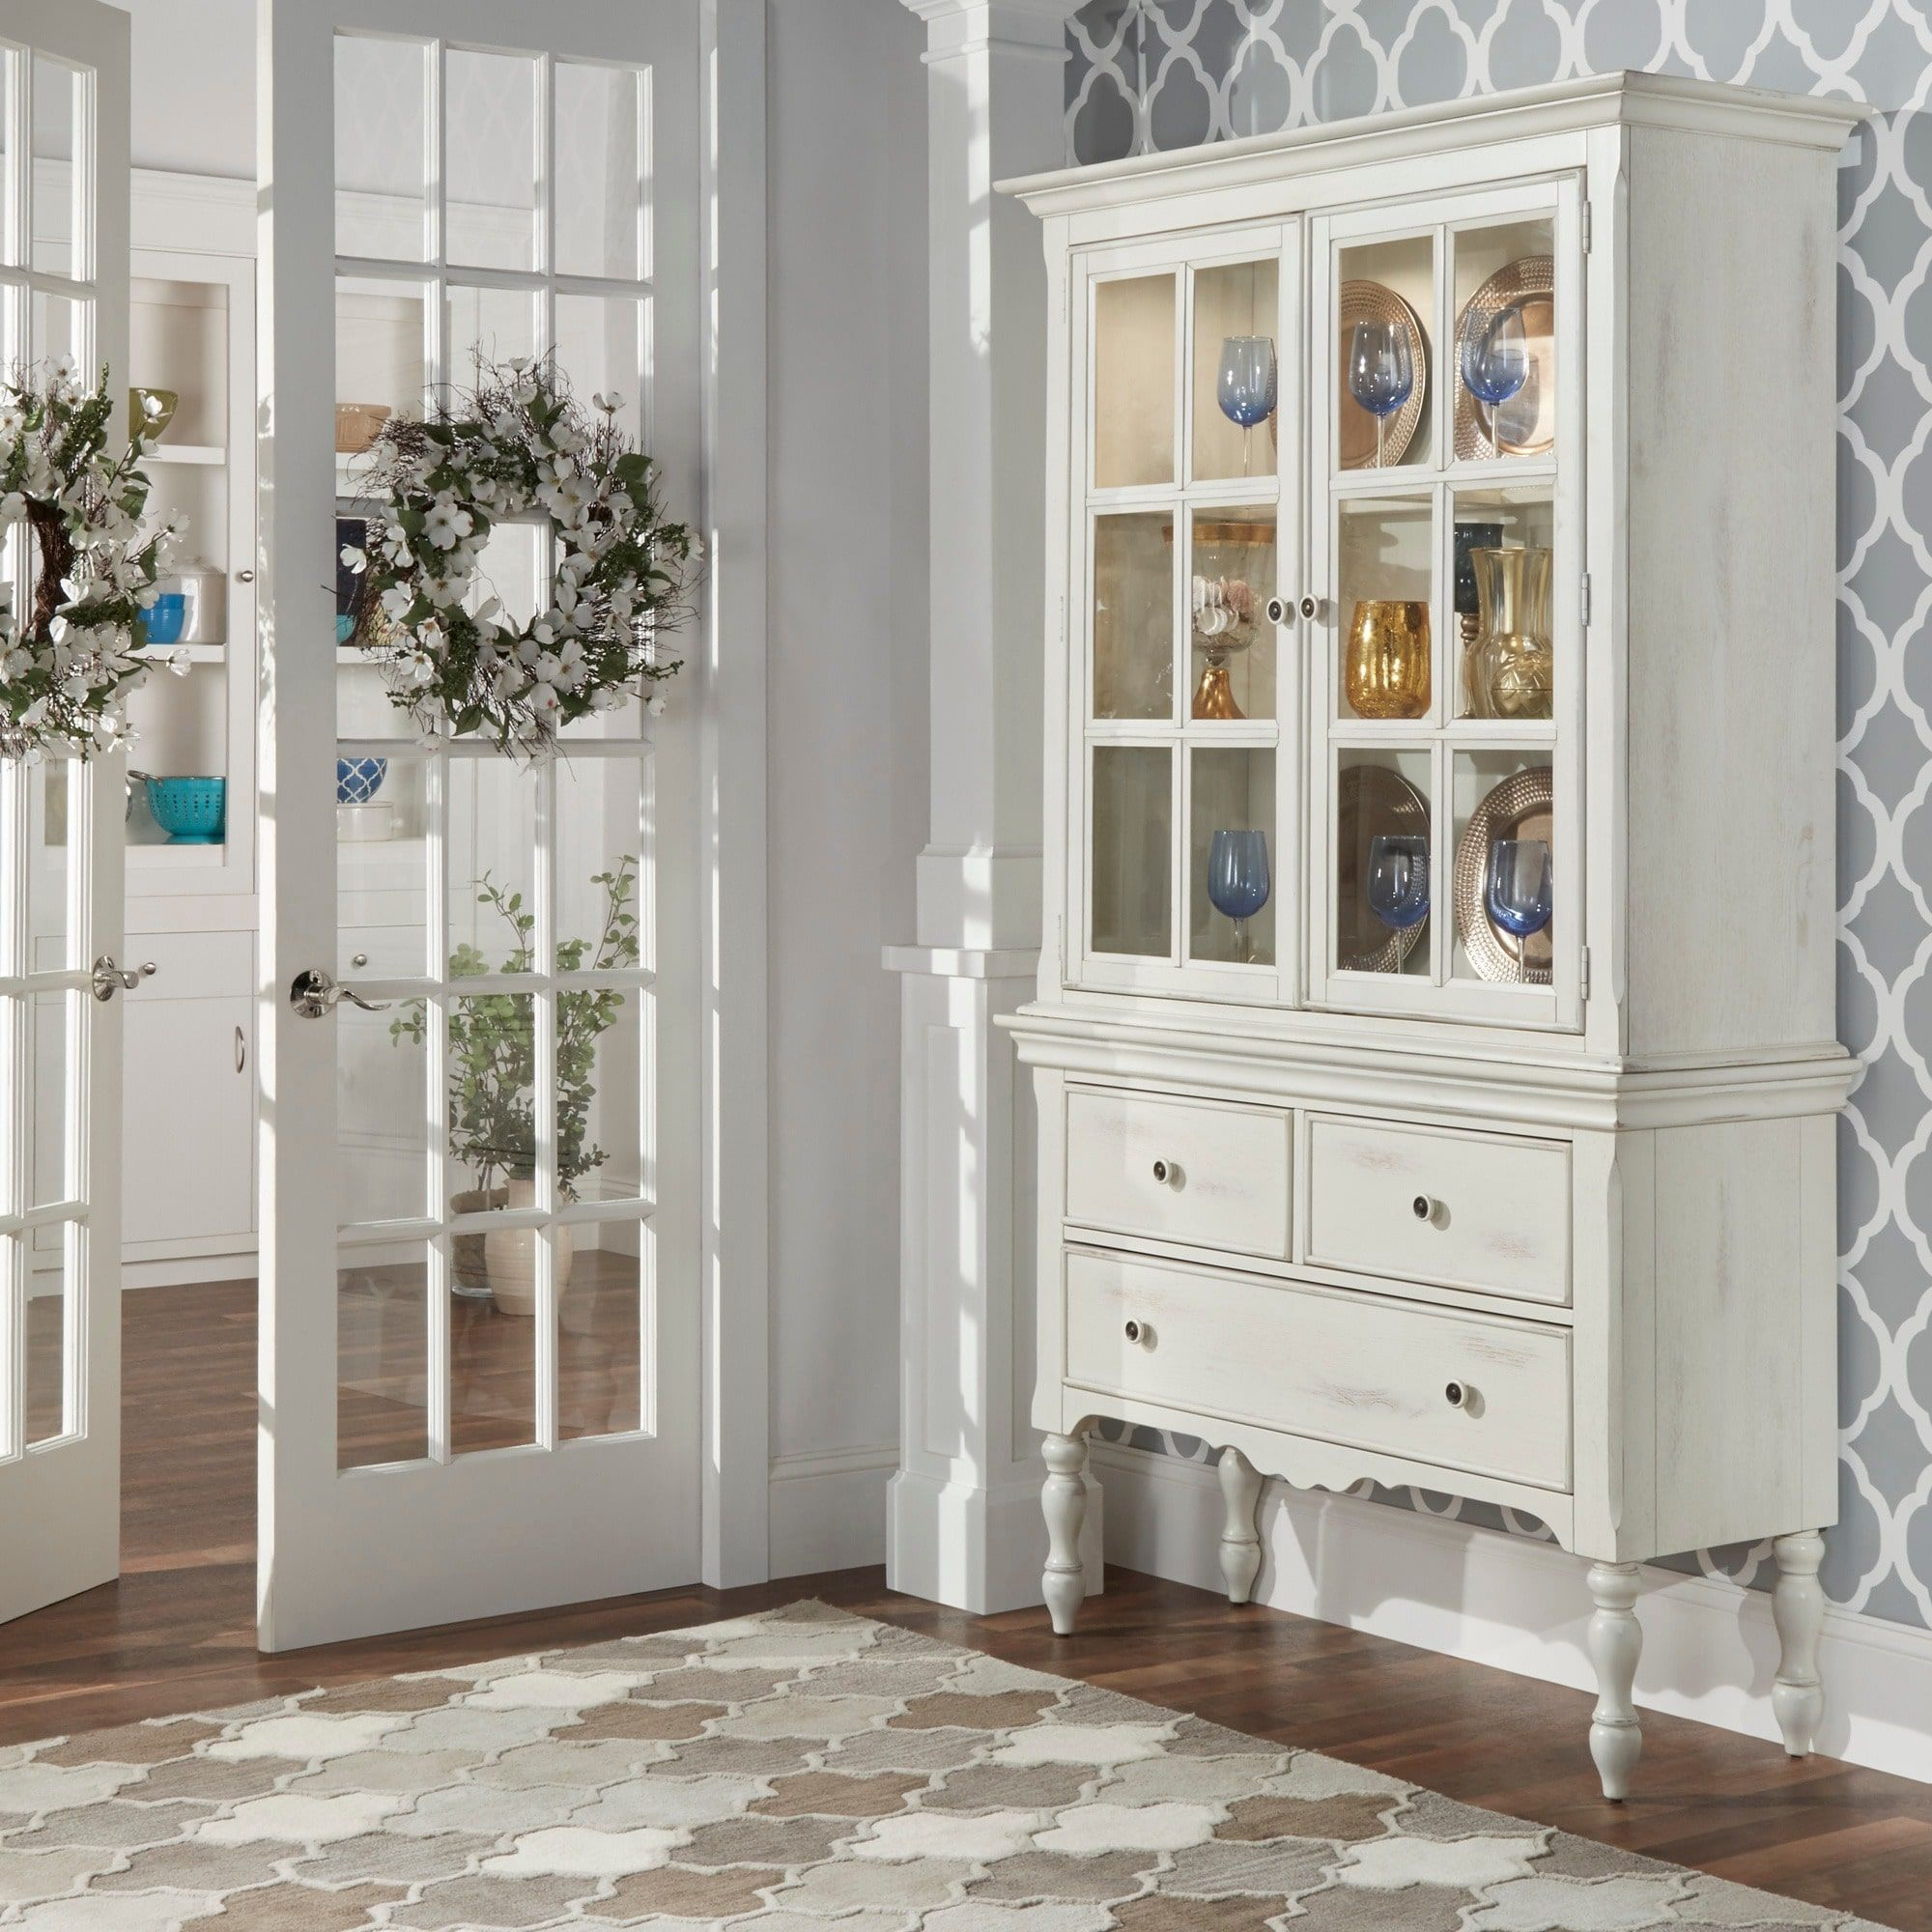 McKay Country Antique White Display Buffet Storage China Cabinet by iNSPIRE  Q Classic by iNSPIRE Q